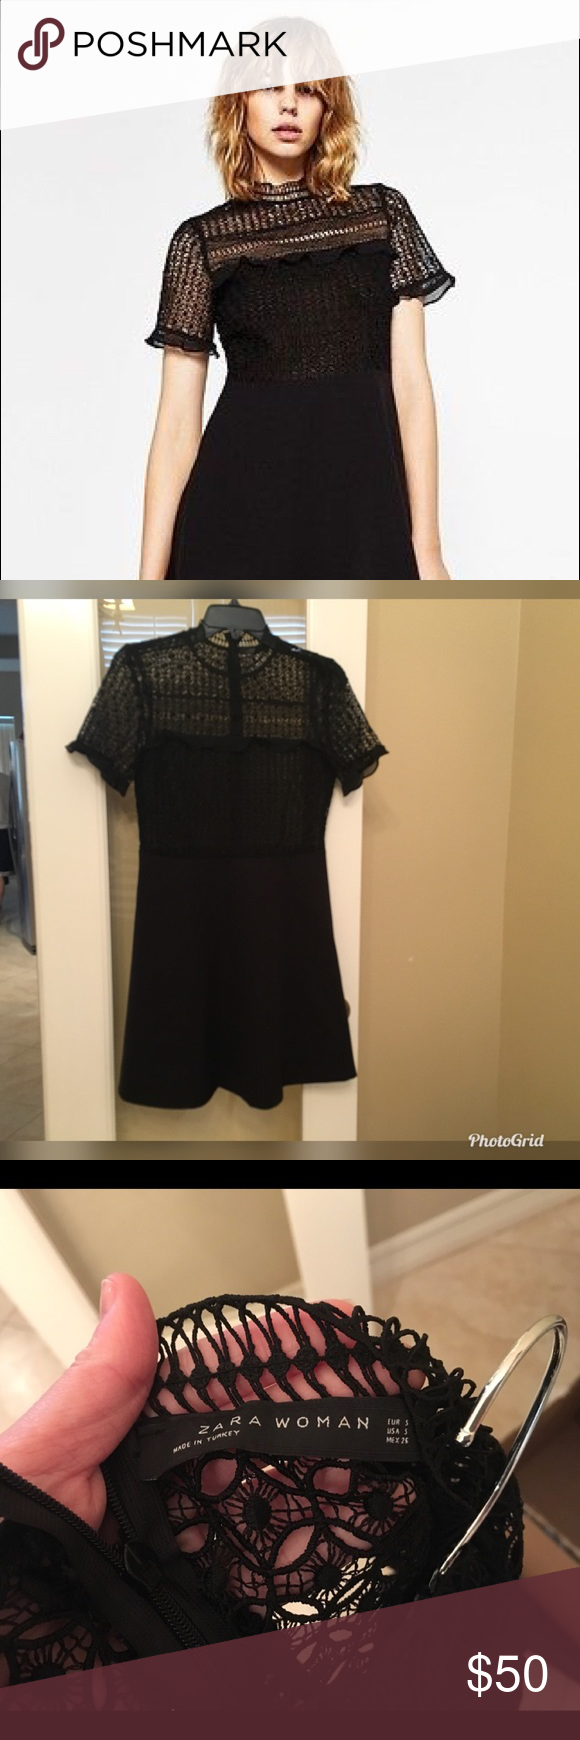 "3a36a409 RARE ZARA BLACK GIUPURE LACE SKATER DRESS S LENGTH 32"" WAIST 14"" BUST 16""  Seen on Riverdale (Veronica) EUC Perfect condition! Fits TTS SMALL  Features: Sheer ..."